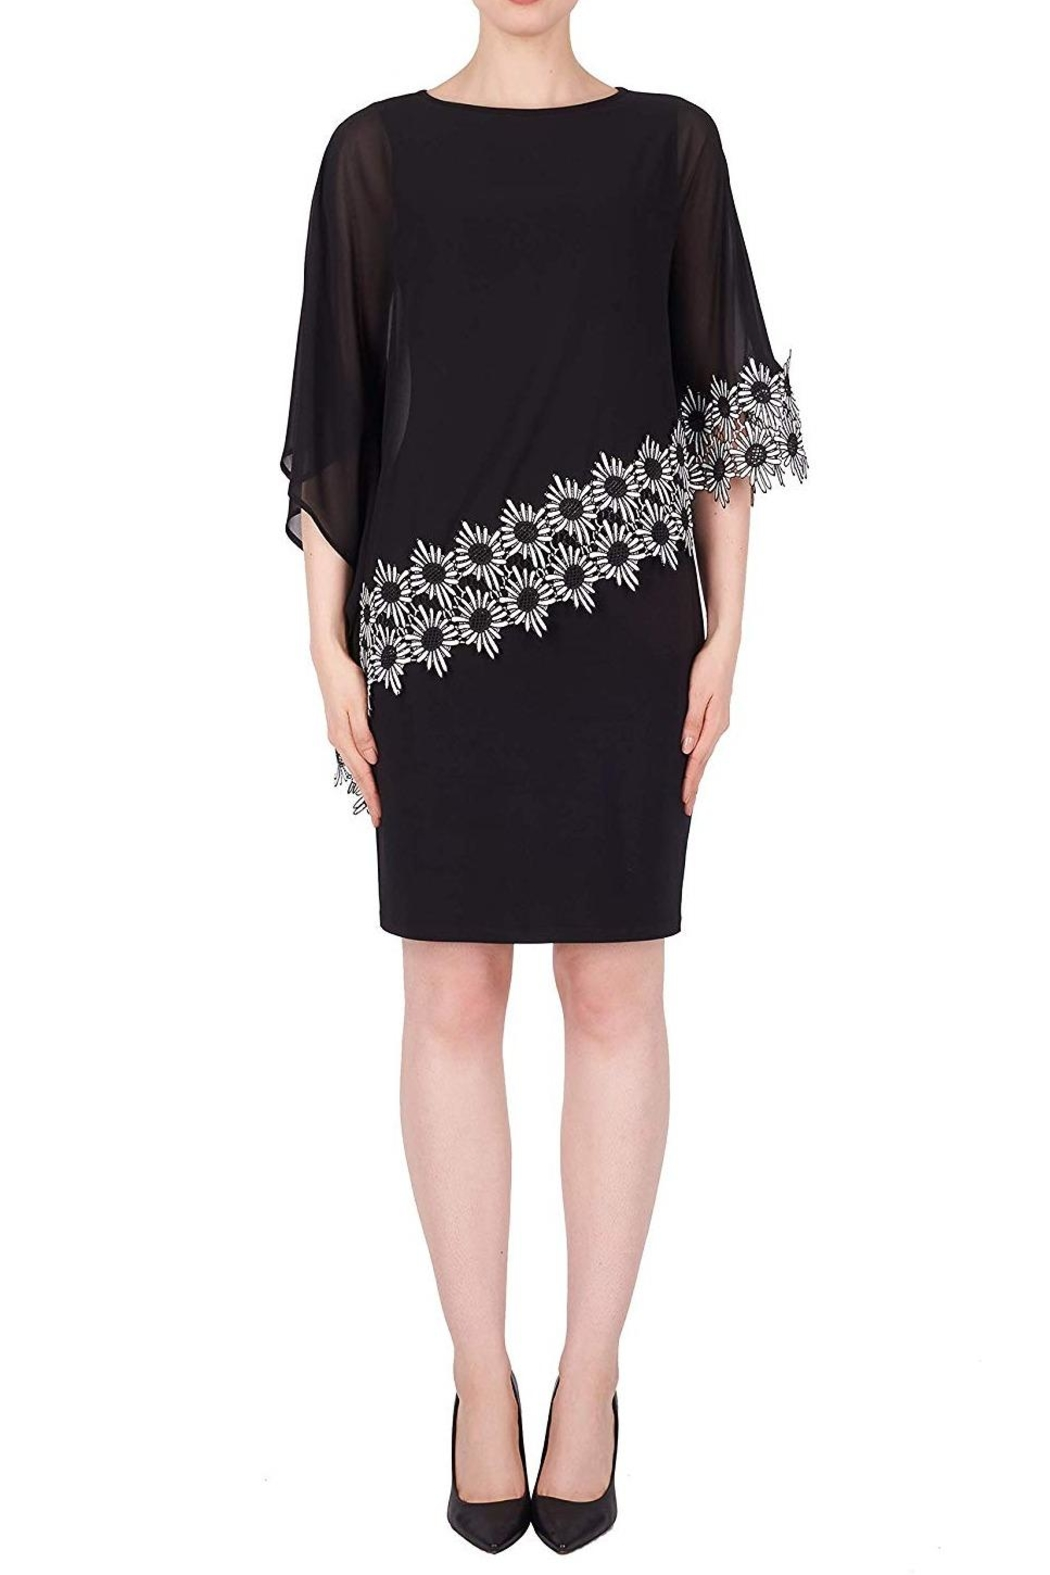 Joseph Ribkoff Black Scarf Dress - Front Cropped Image